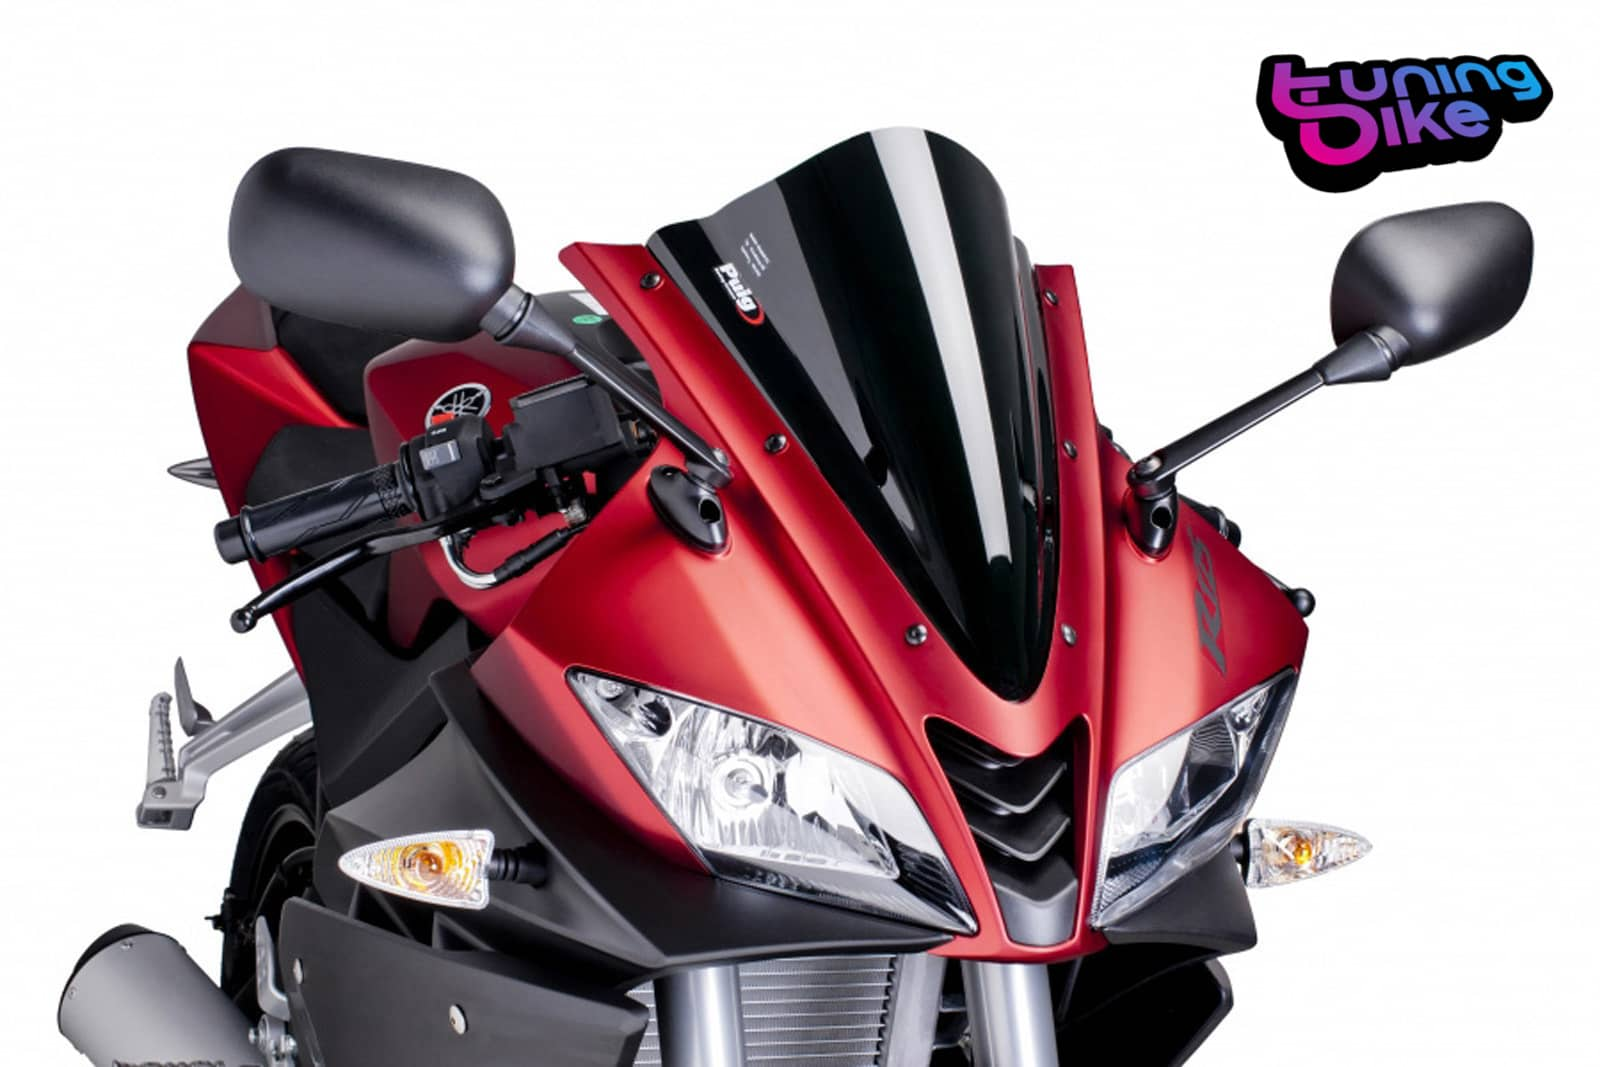 puig racing screen yamaha yzf r125 year 08 39 17 39 black ebay. Black Bedroom Furniture Sets. Home Design Ideas